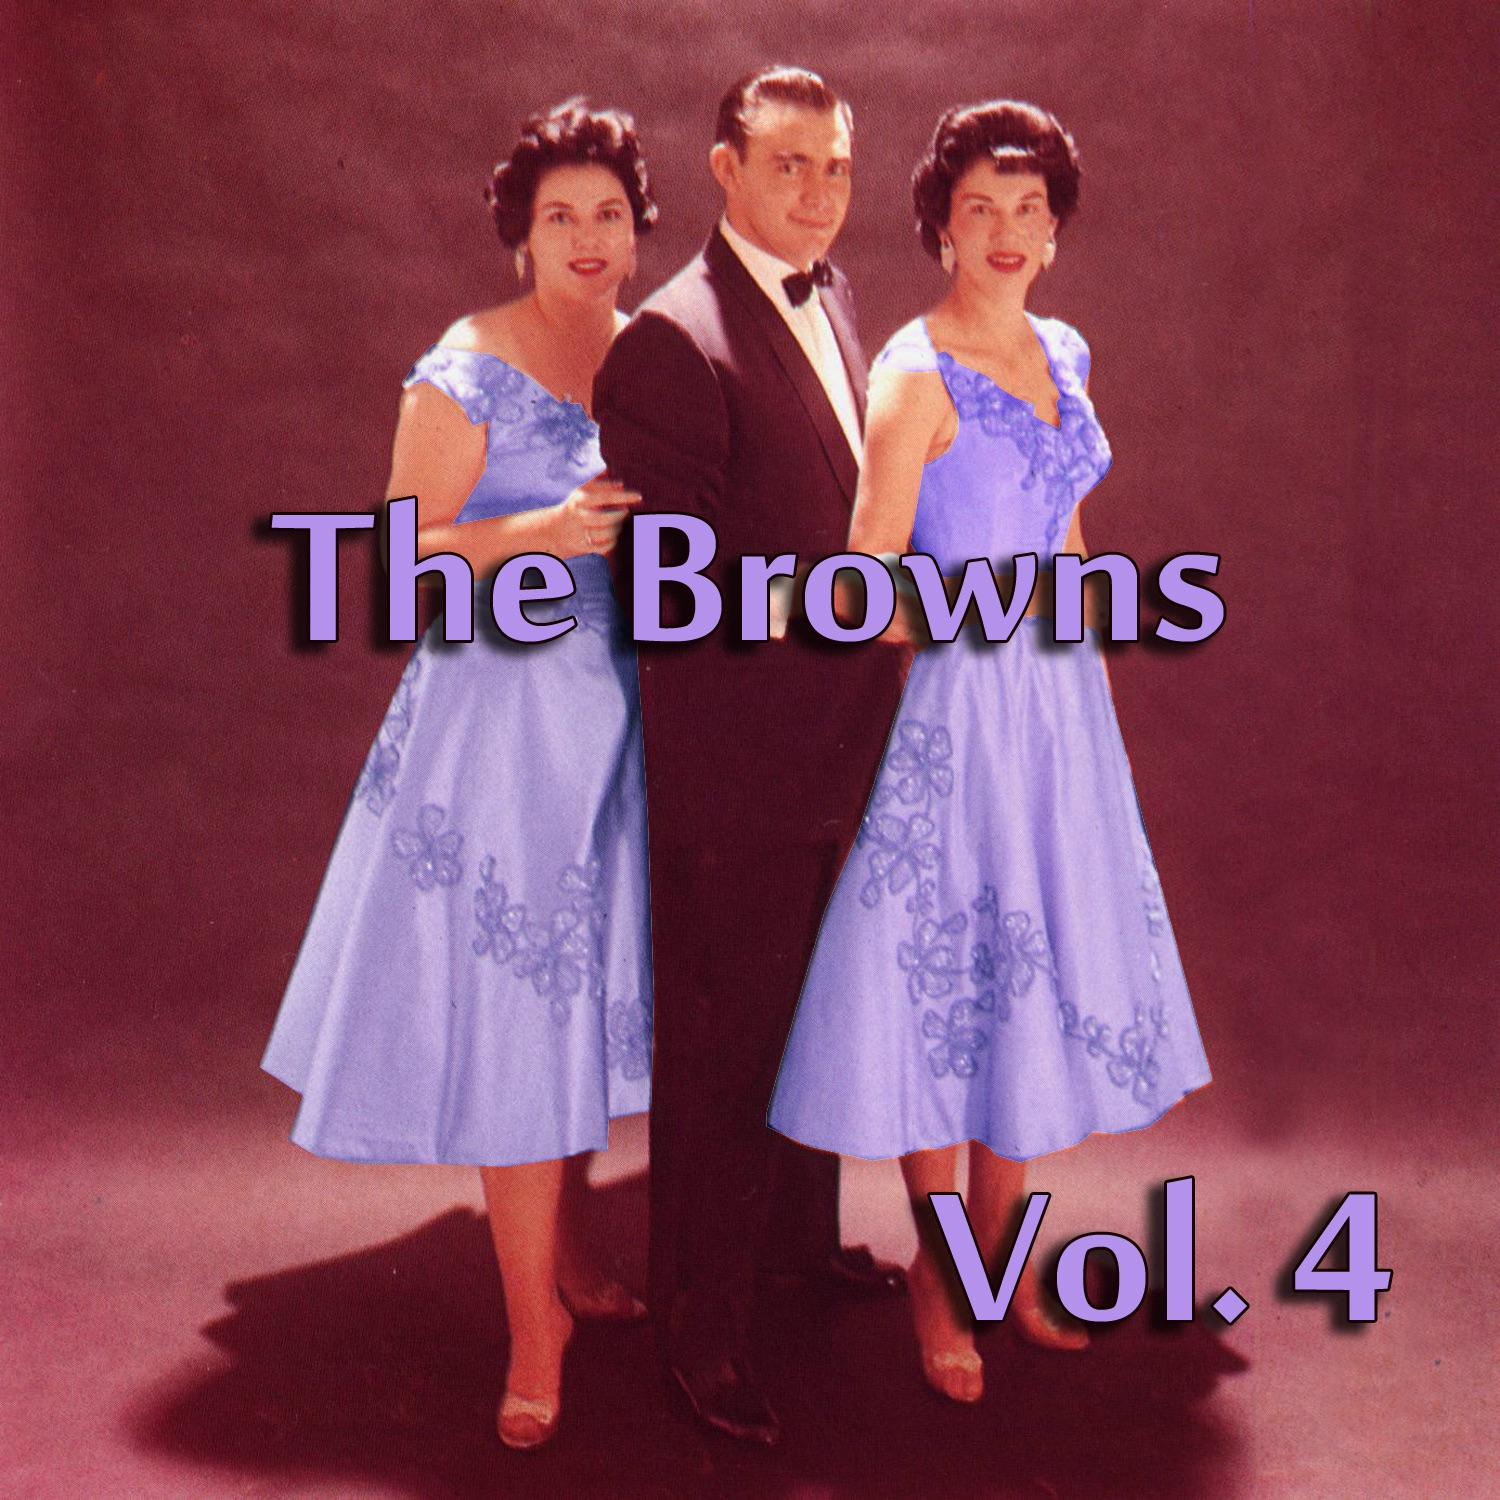 The Browns, Vol. 4